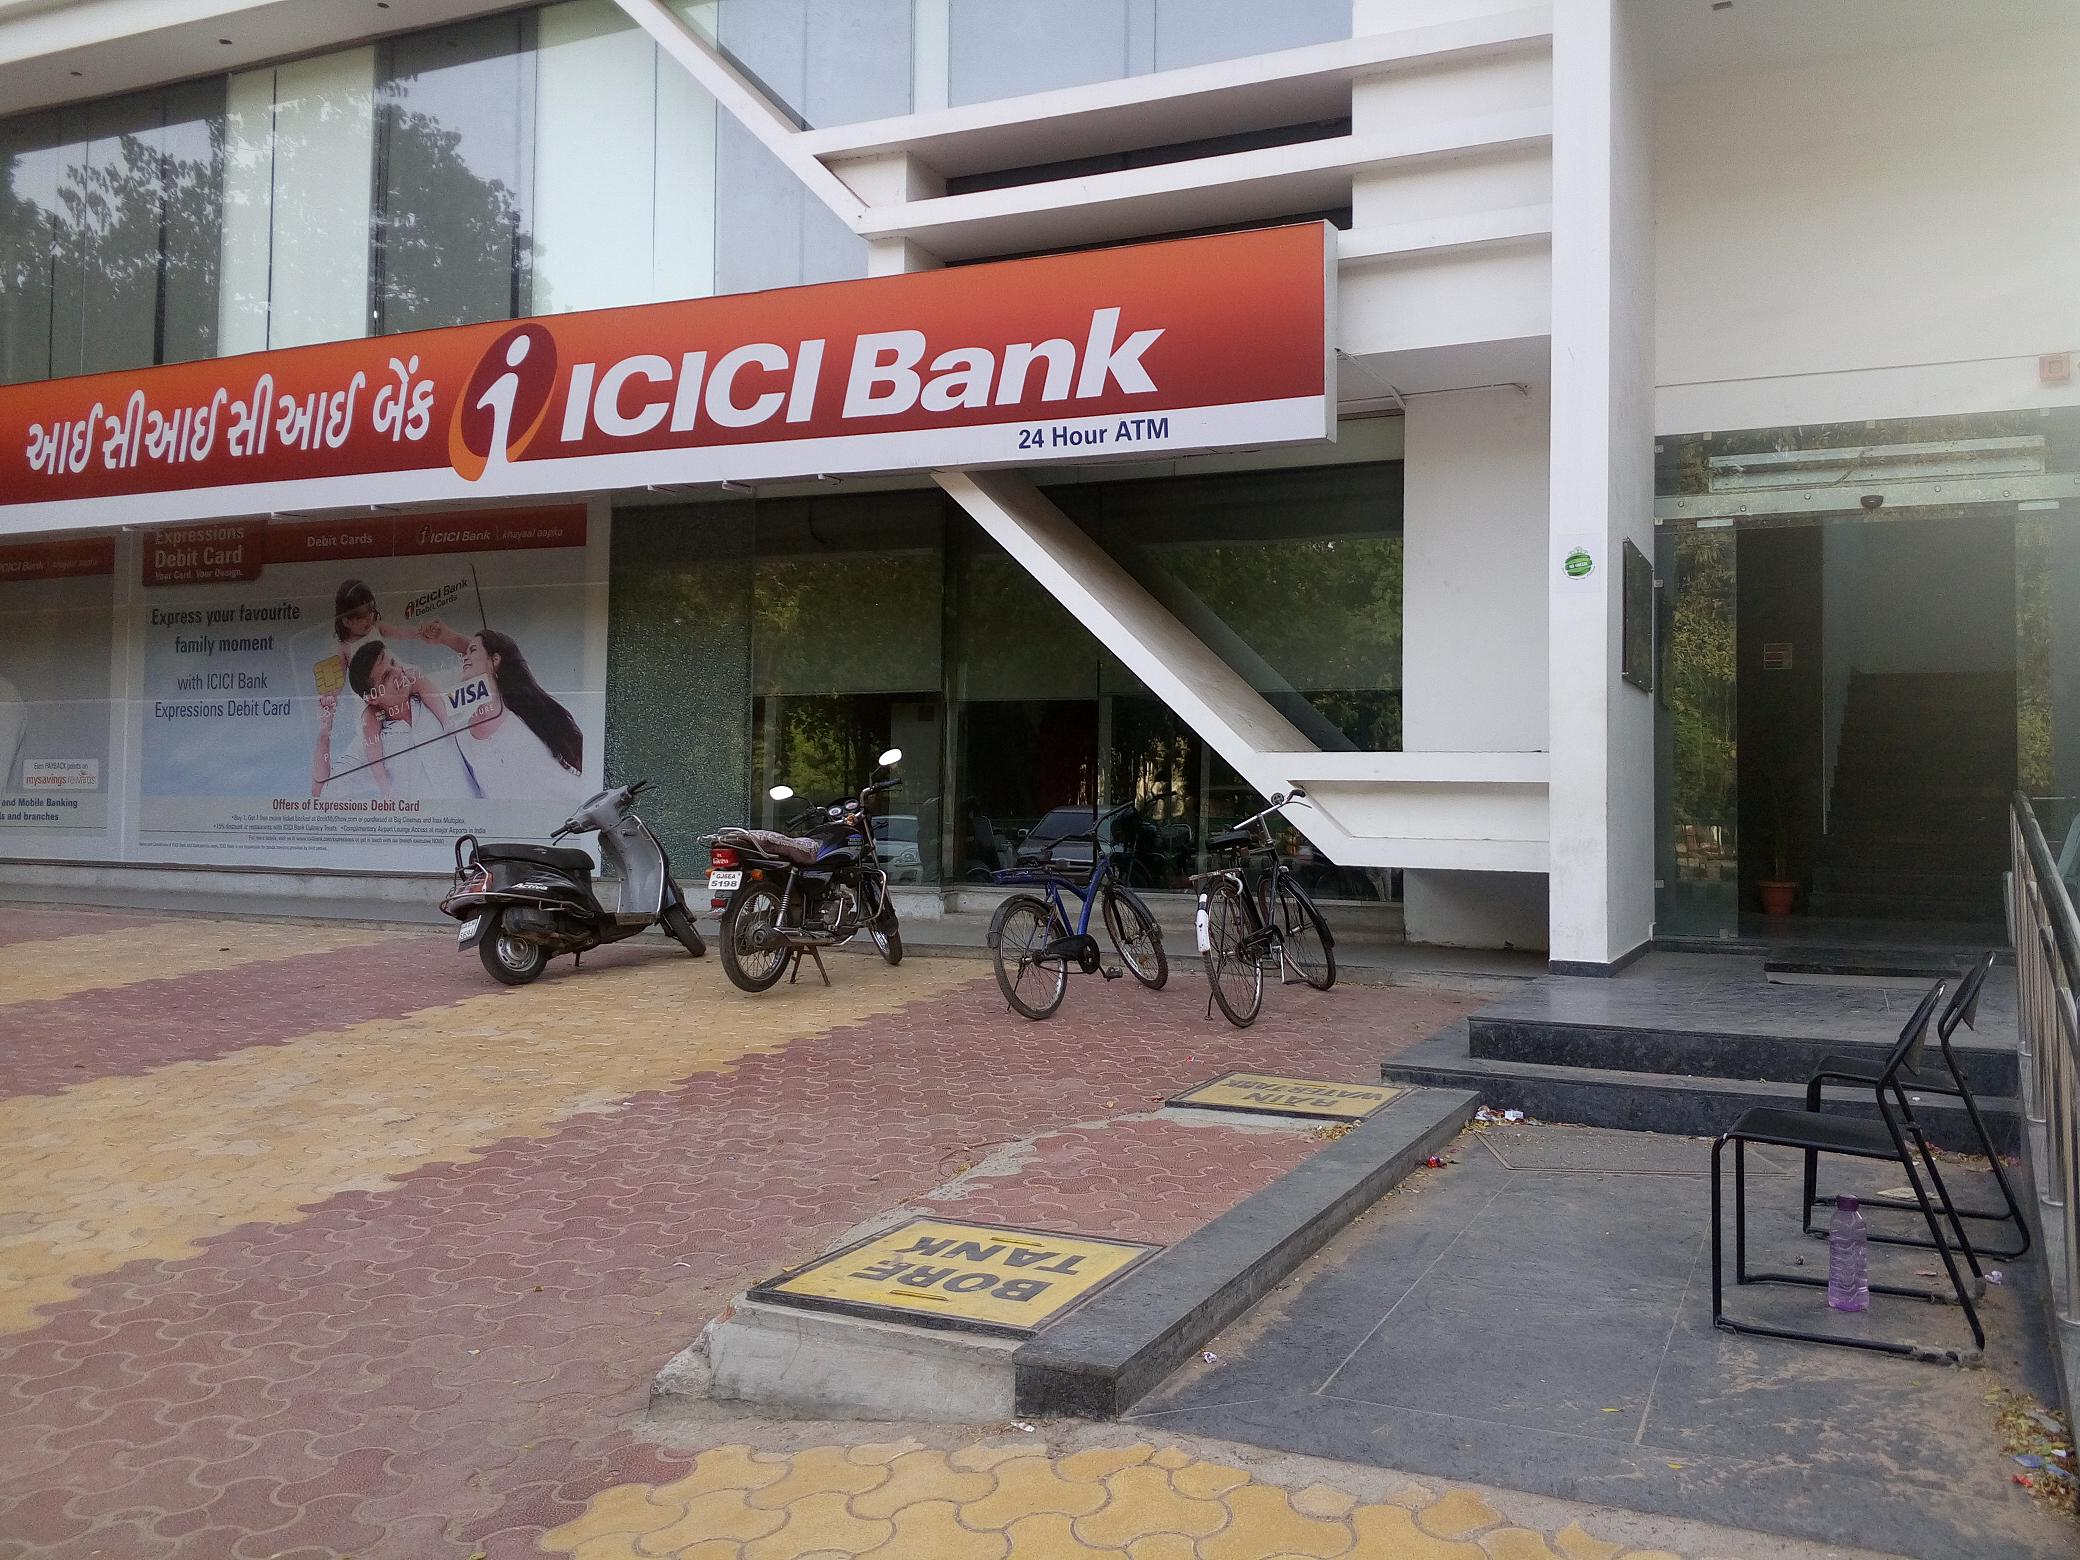 ICICI Bird Circle have enough space but no special parking and improper ramp at Branch